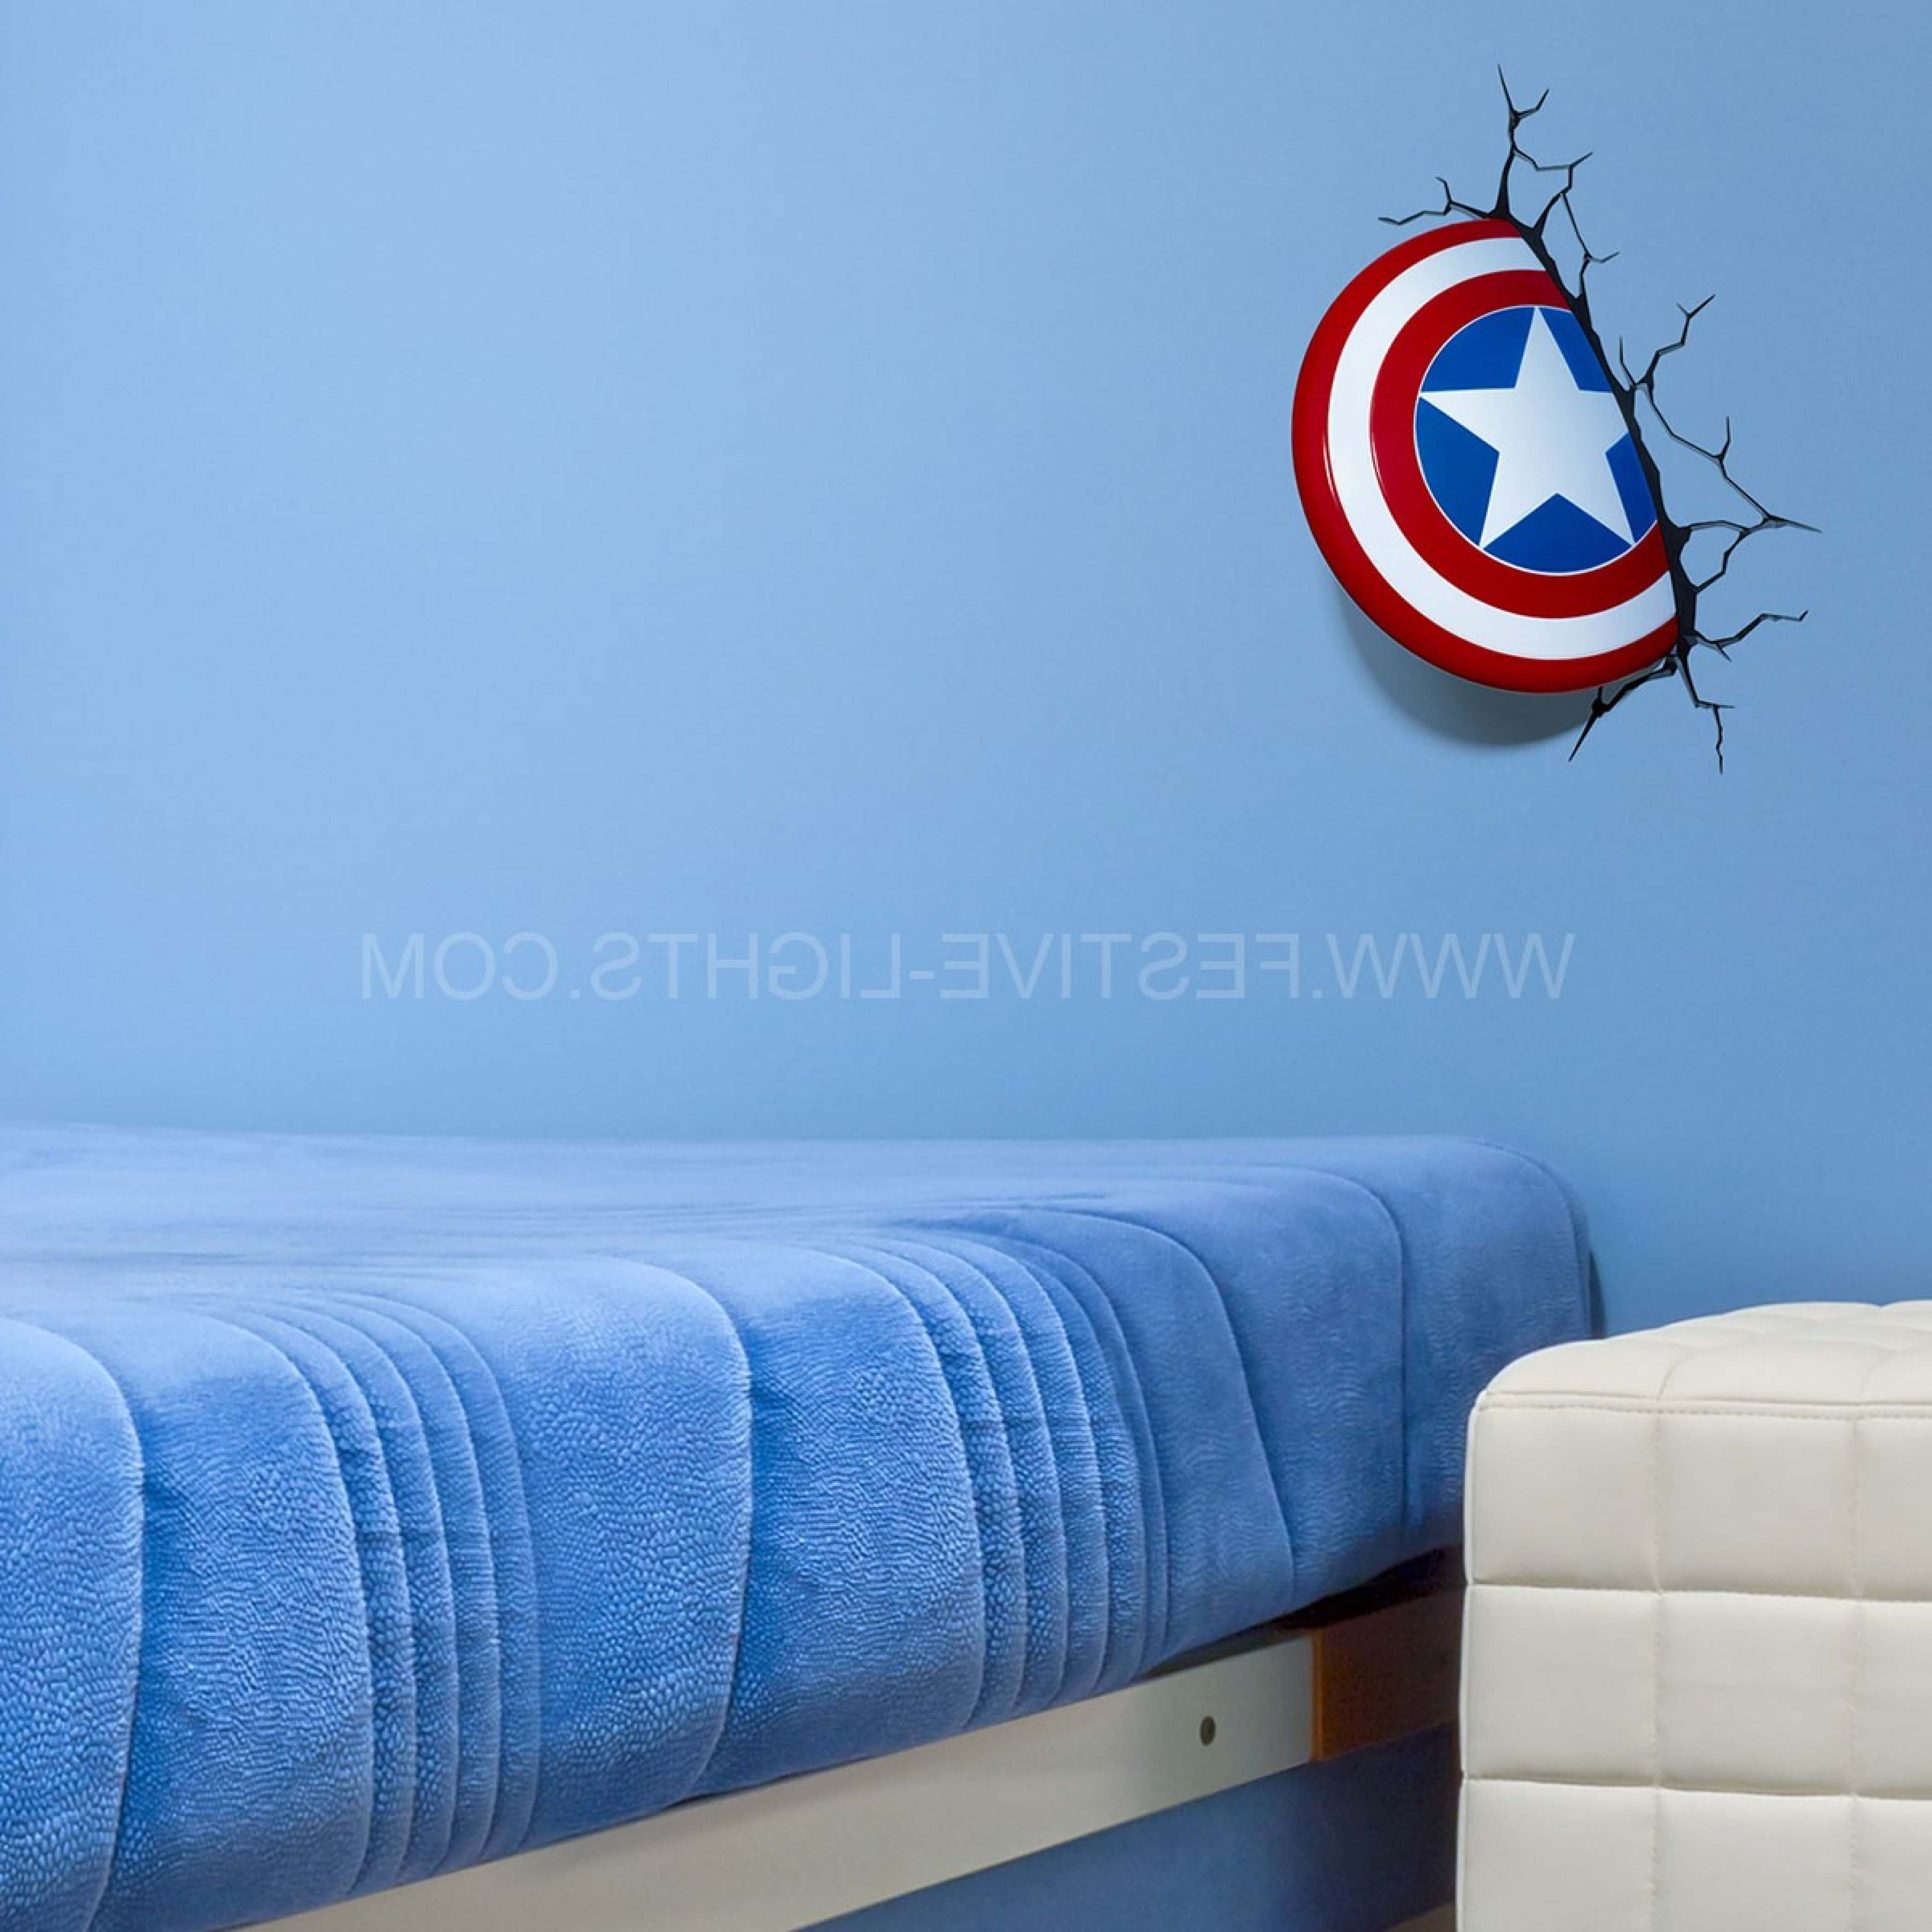 Famous America Shield 3d Led Battery Wall Art Night Light With Regard To 3d Wall Art Captain America Night Light (View 10 of 15)